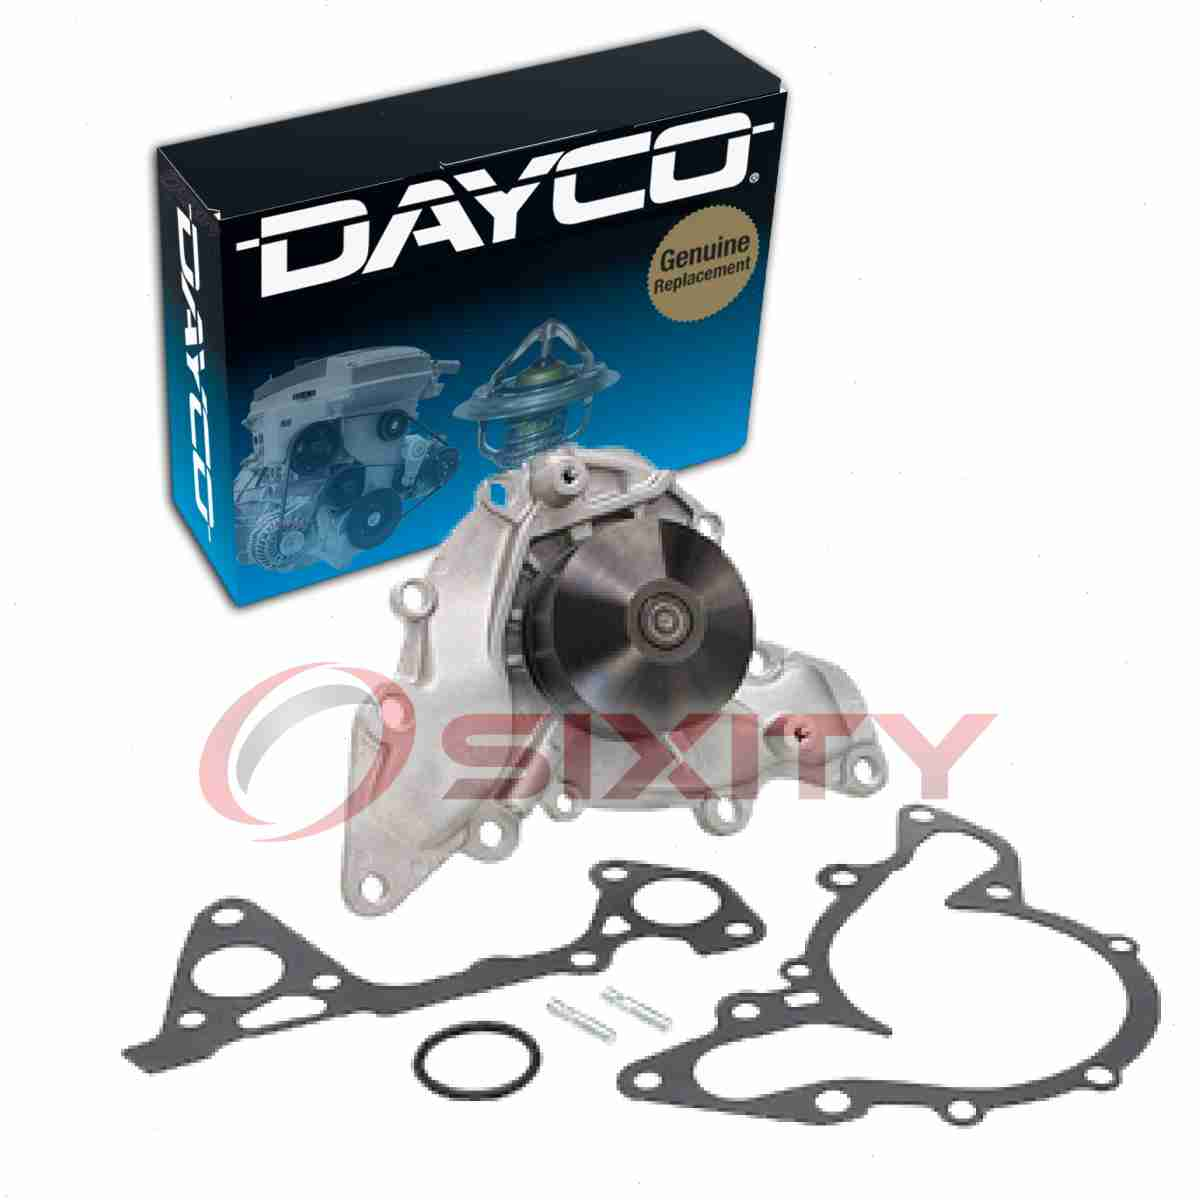 Dayco Water Pump for Mitsubishi Montero 1995-2000 3.0L V6 Engine Tune Up kh